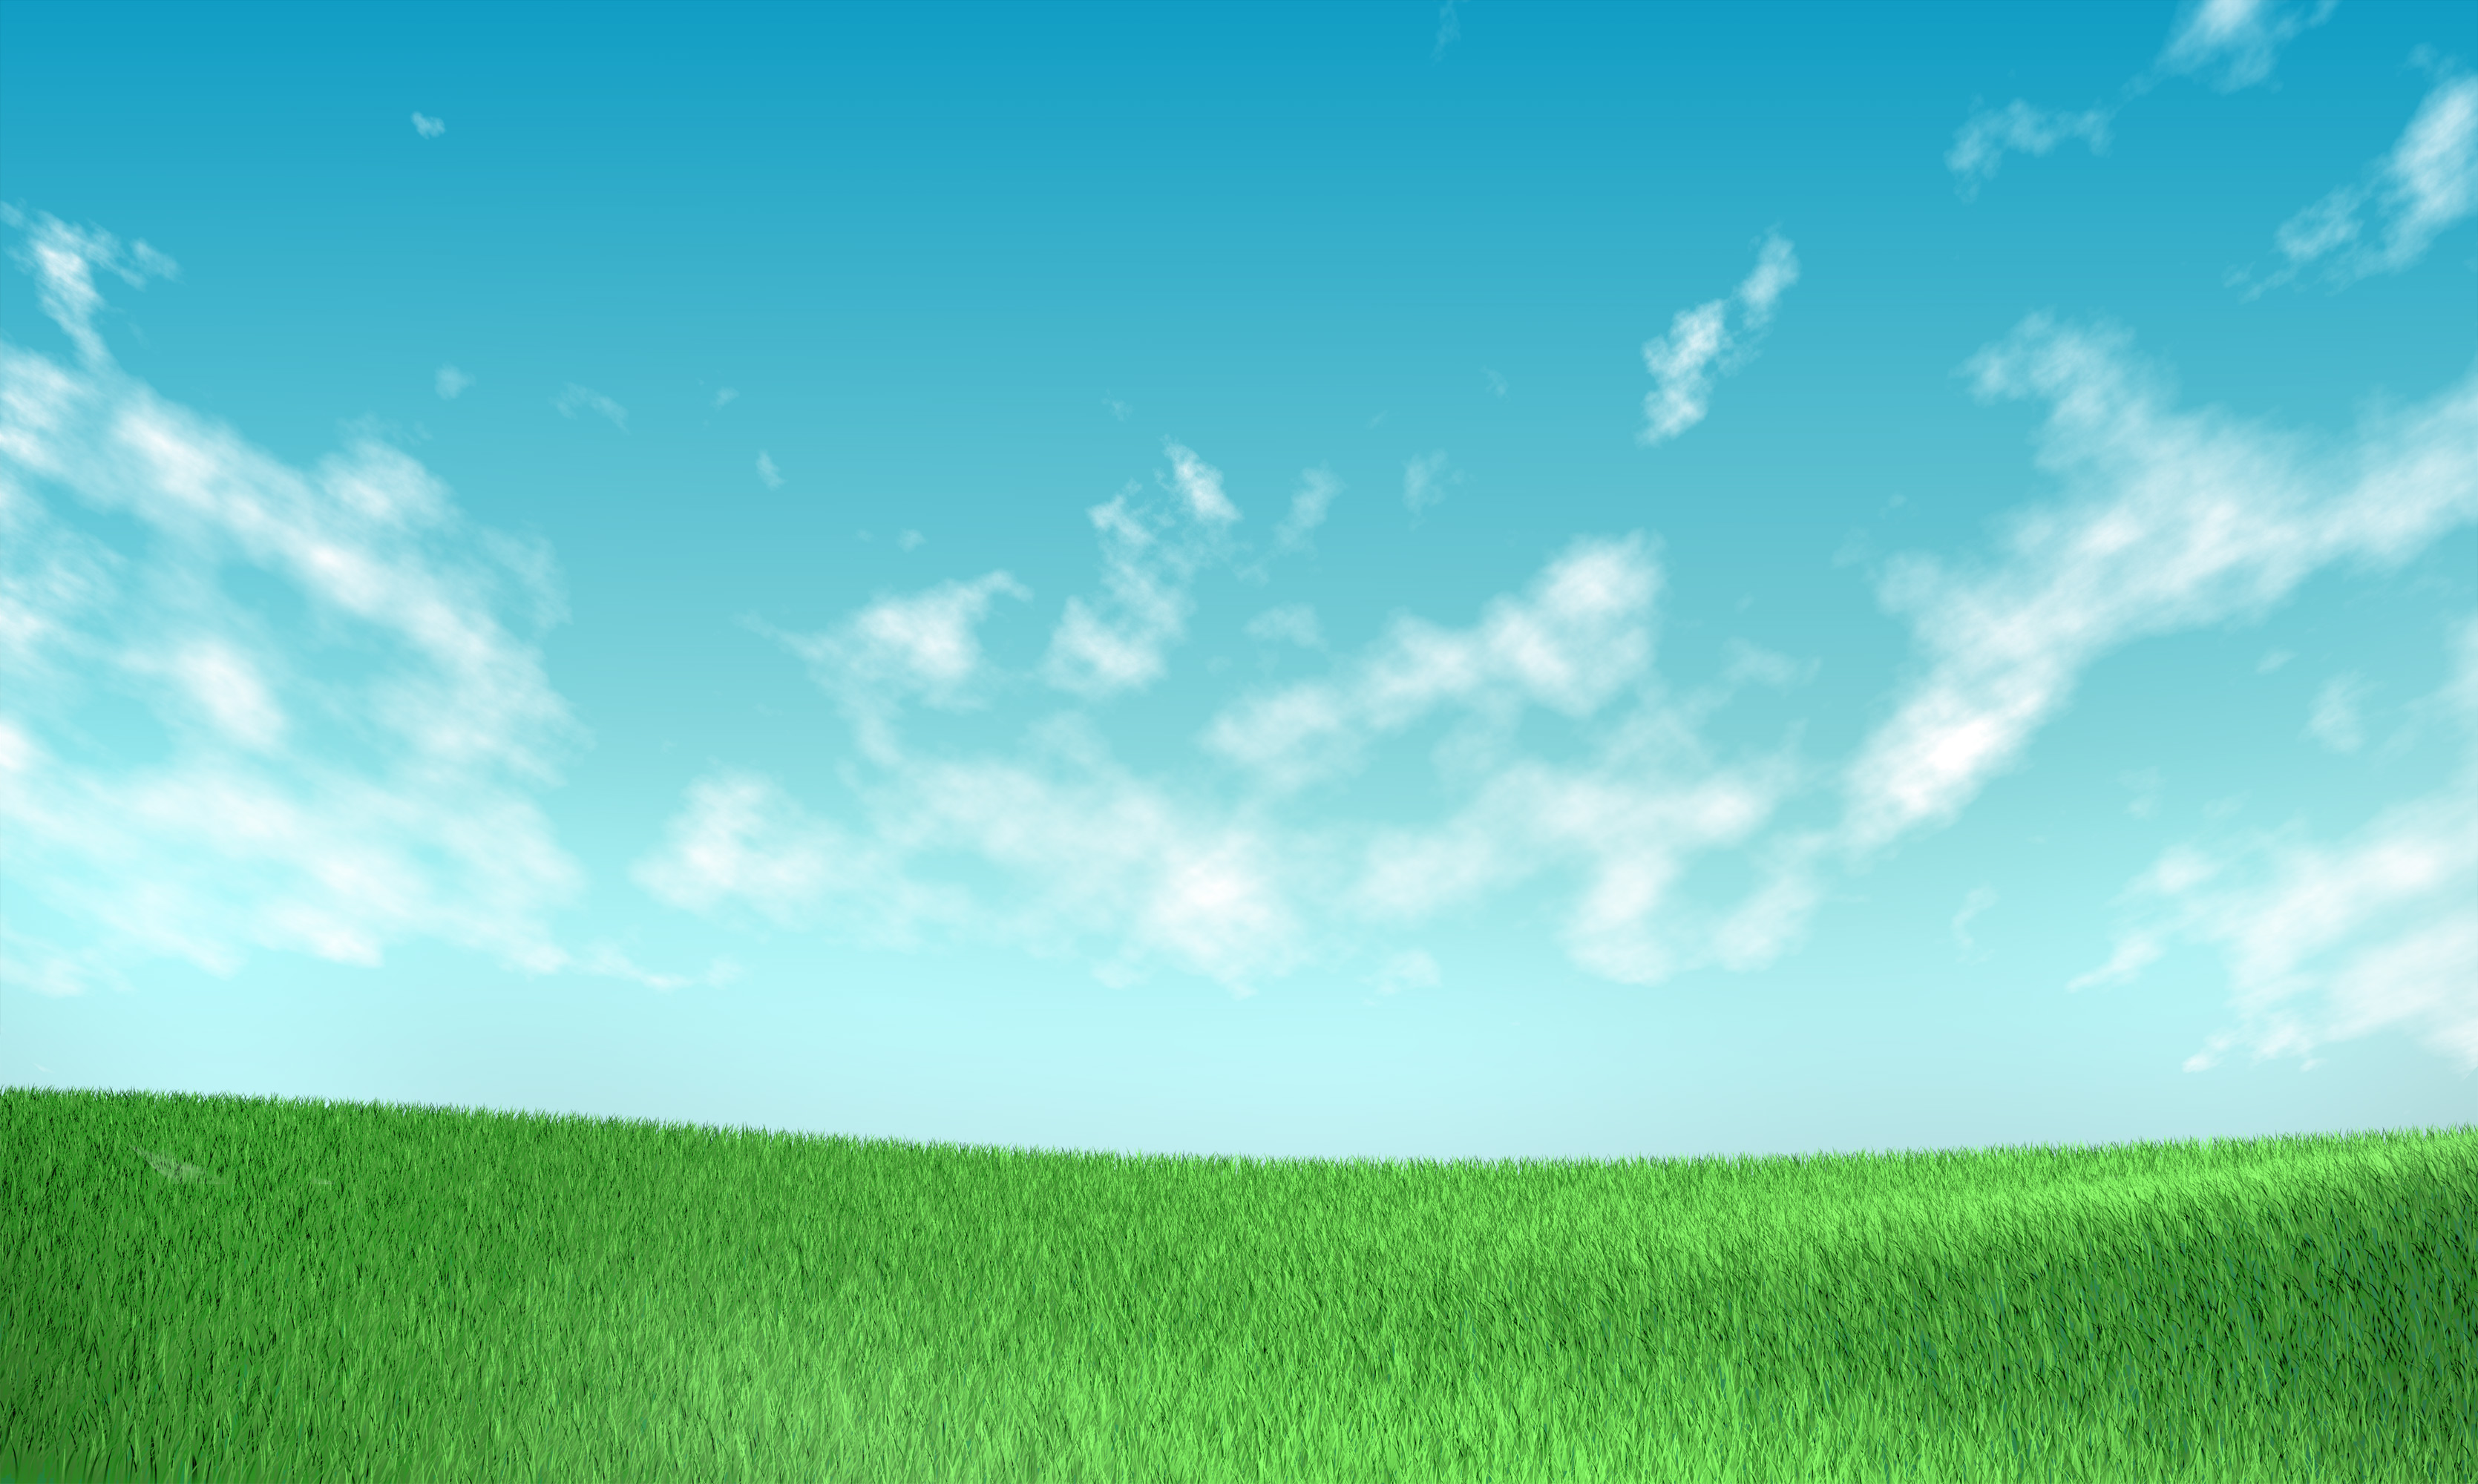 Grass and sky background clipart.